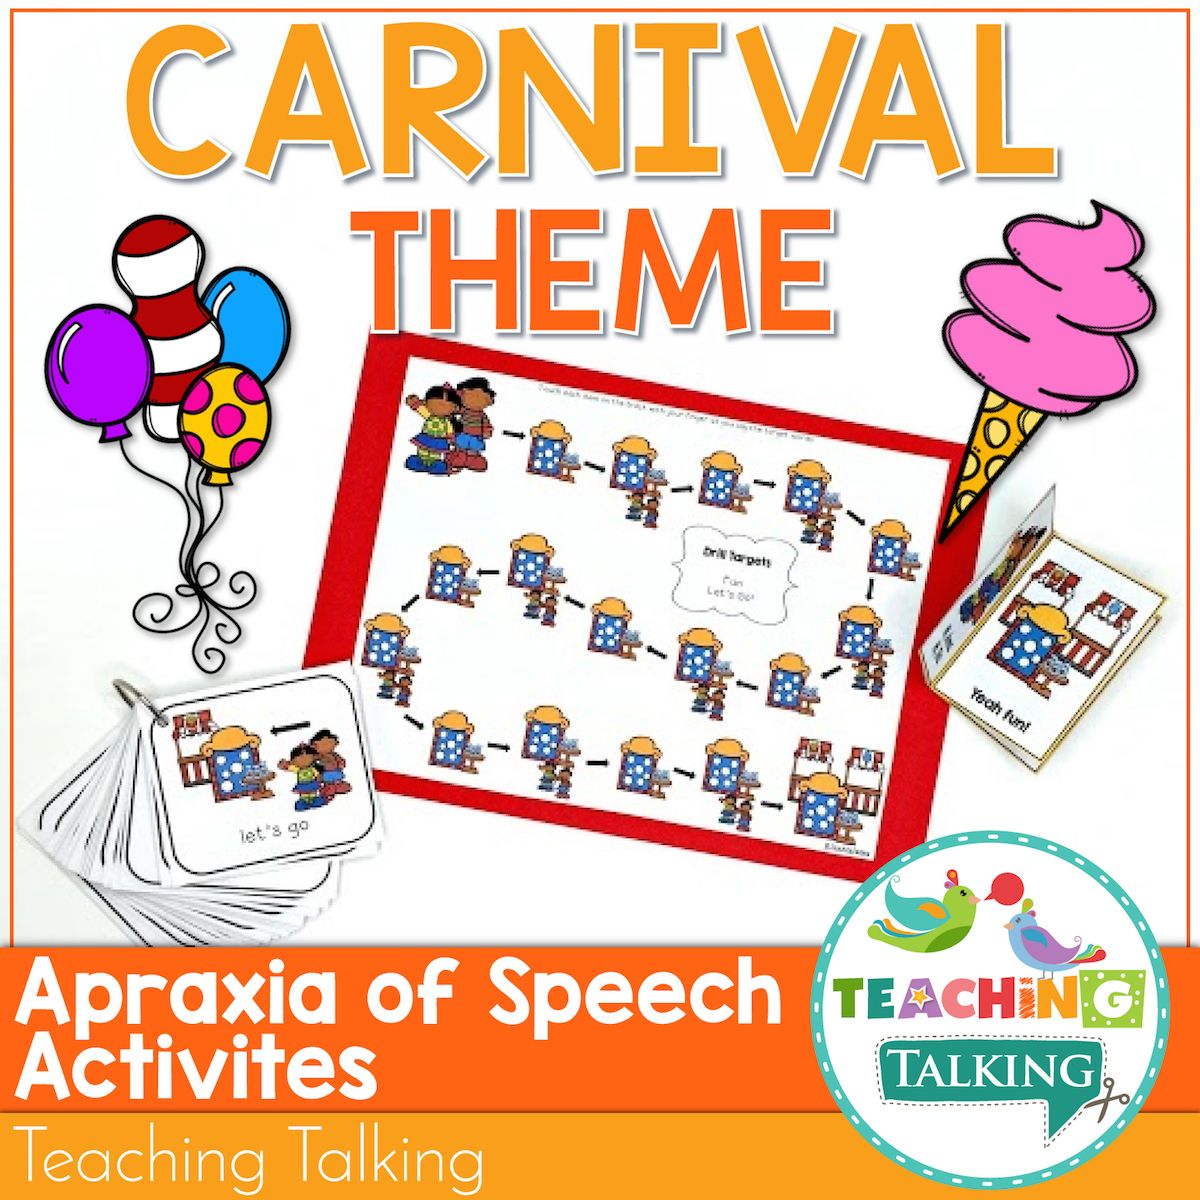 Apraxia Of Speech Activities Carnival Theme